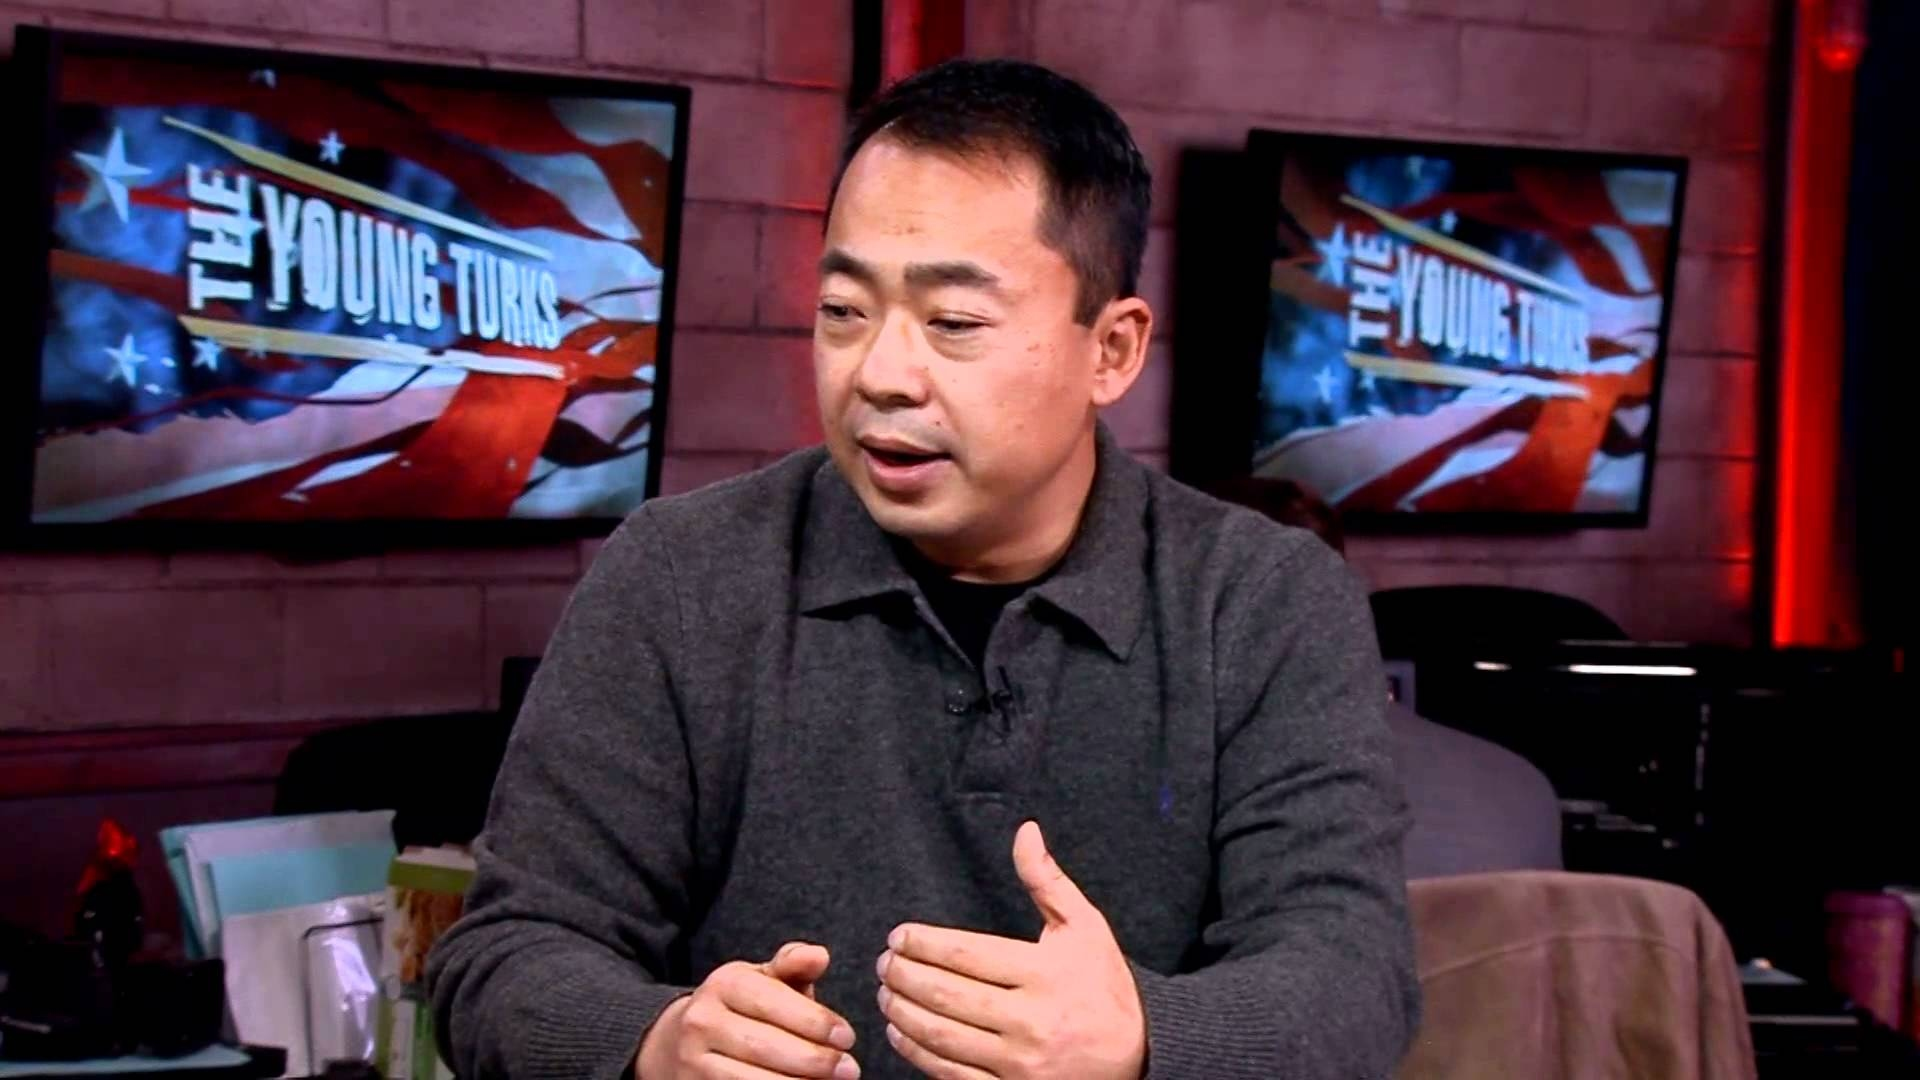 steven oh young turks